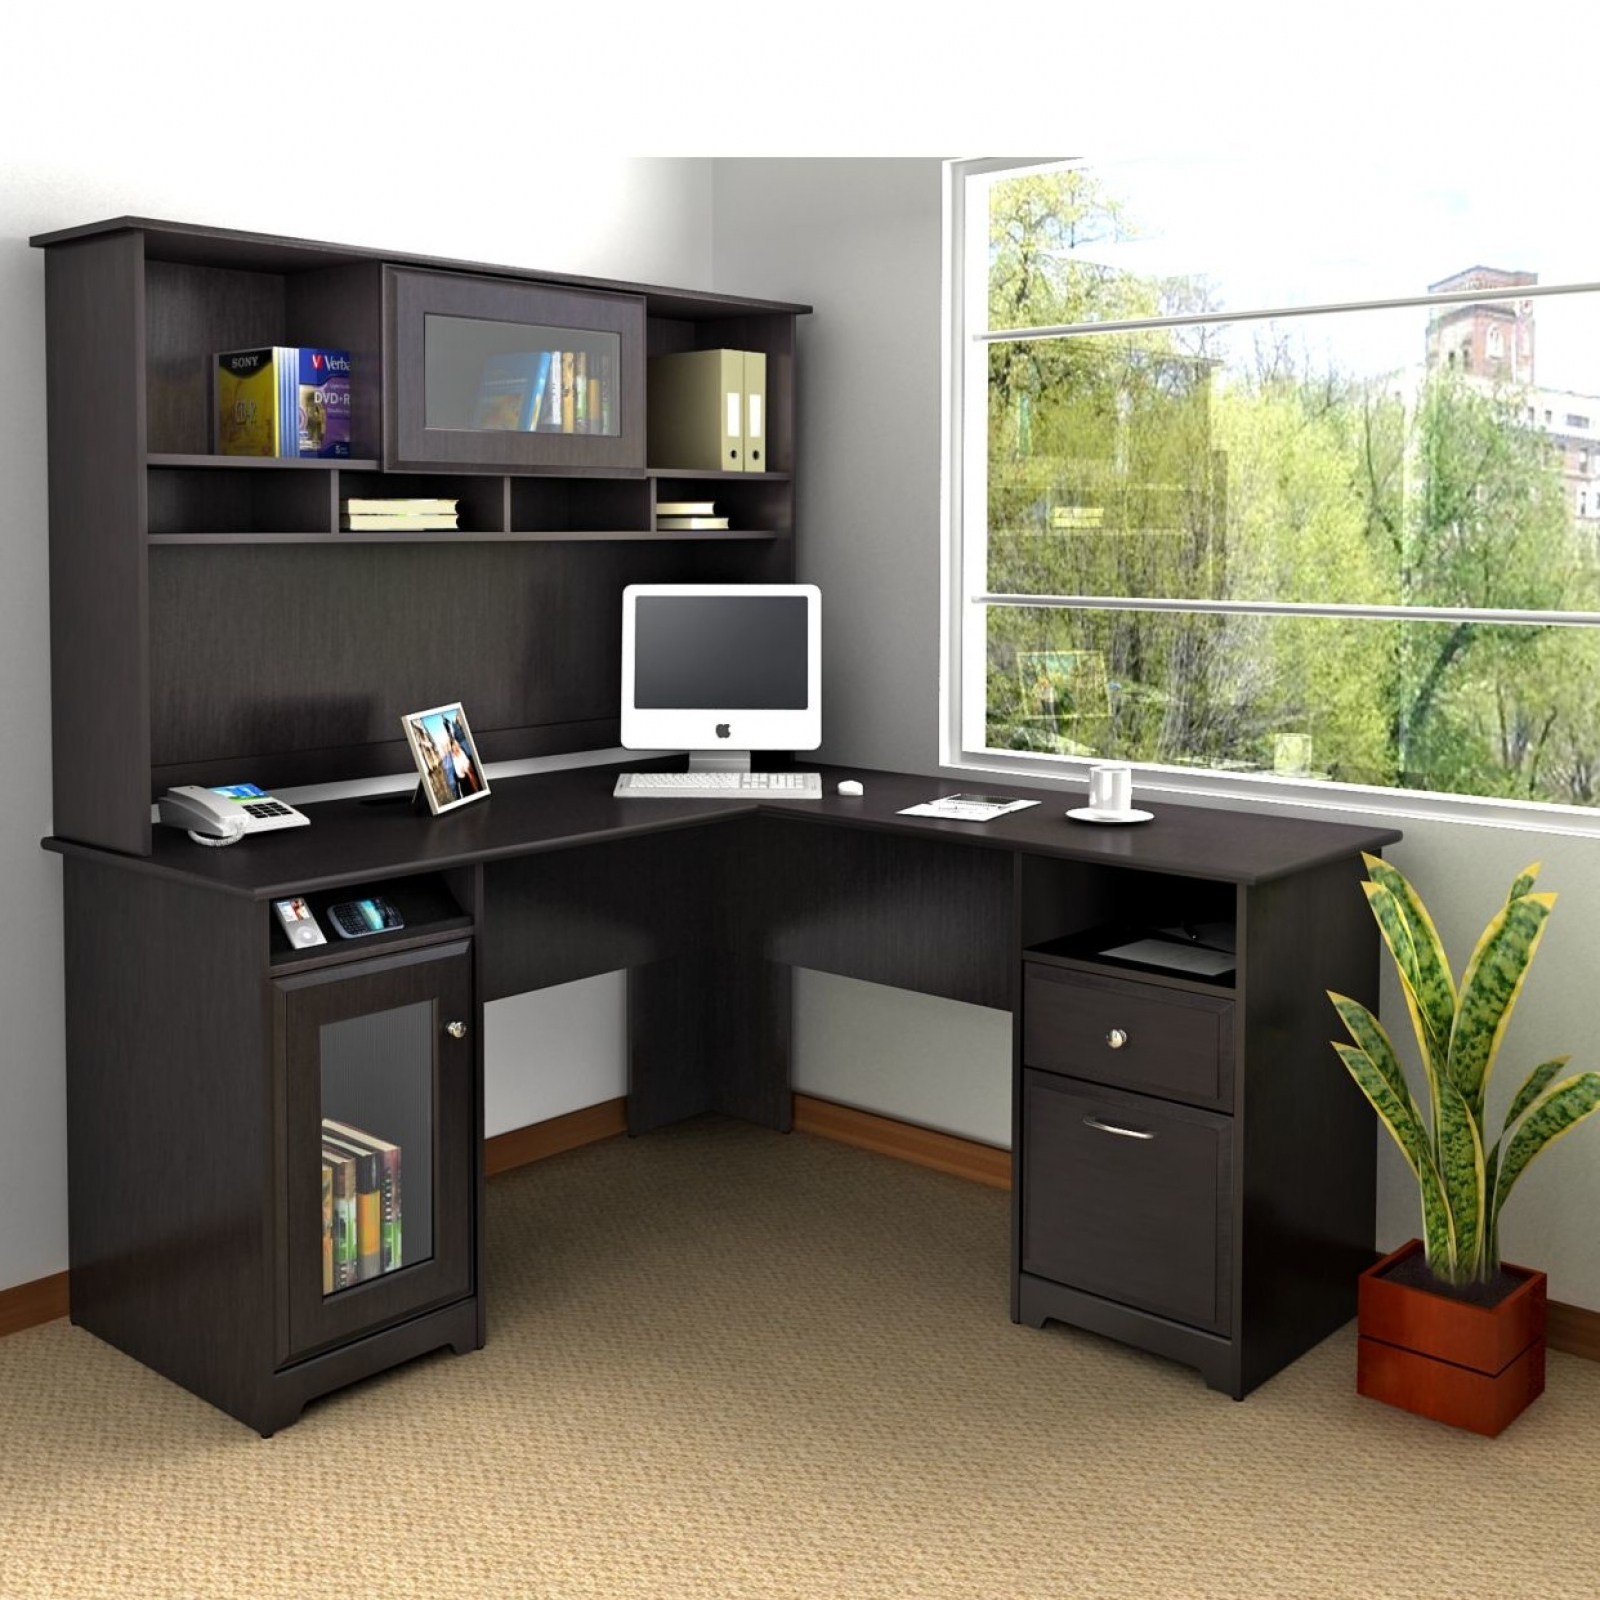 Merveilleux Corner Computer Desk With Hutch For Home